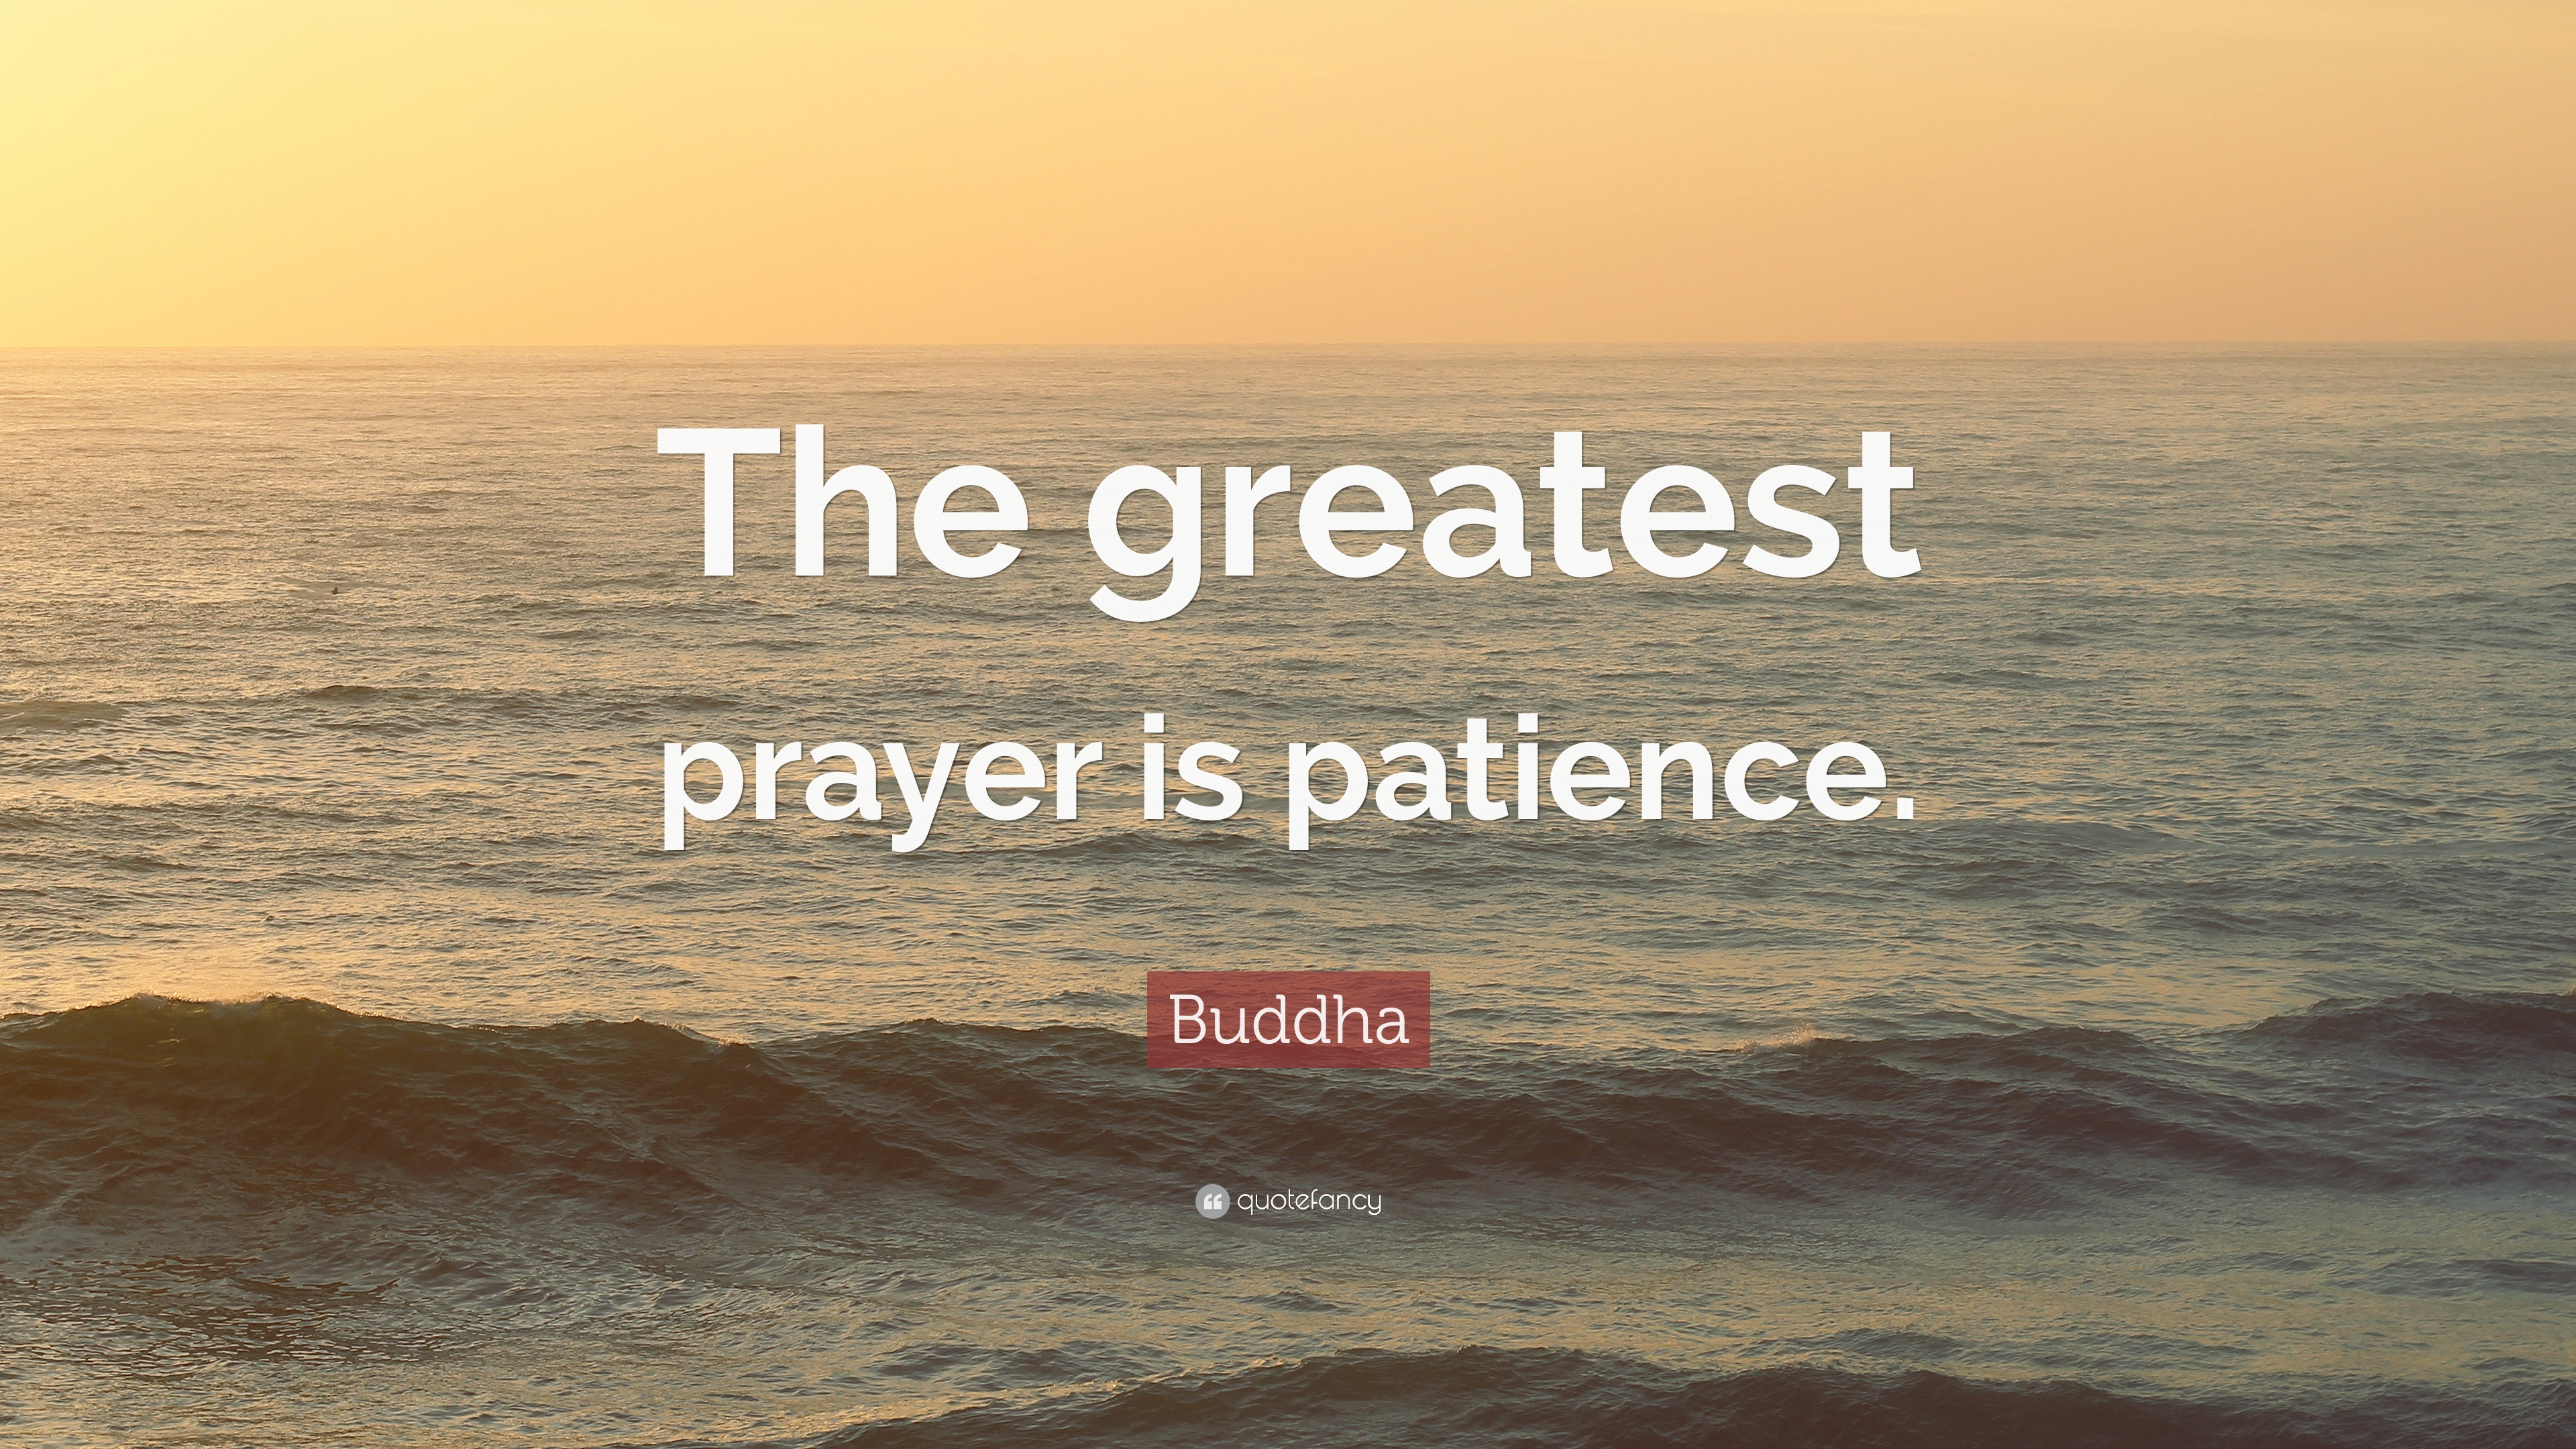 Buddha quote the greatest prayer is patience 49 wallpapers buddha quote the greatest prayer is patience thecheapjerseys Image collections